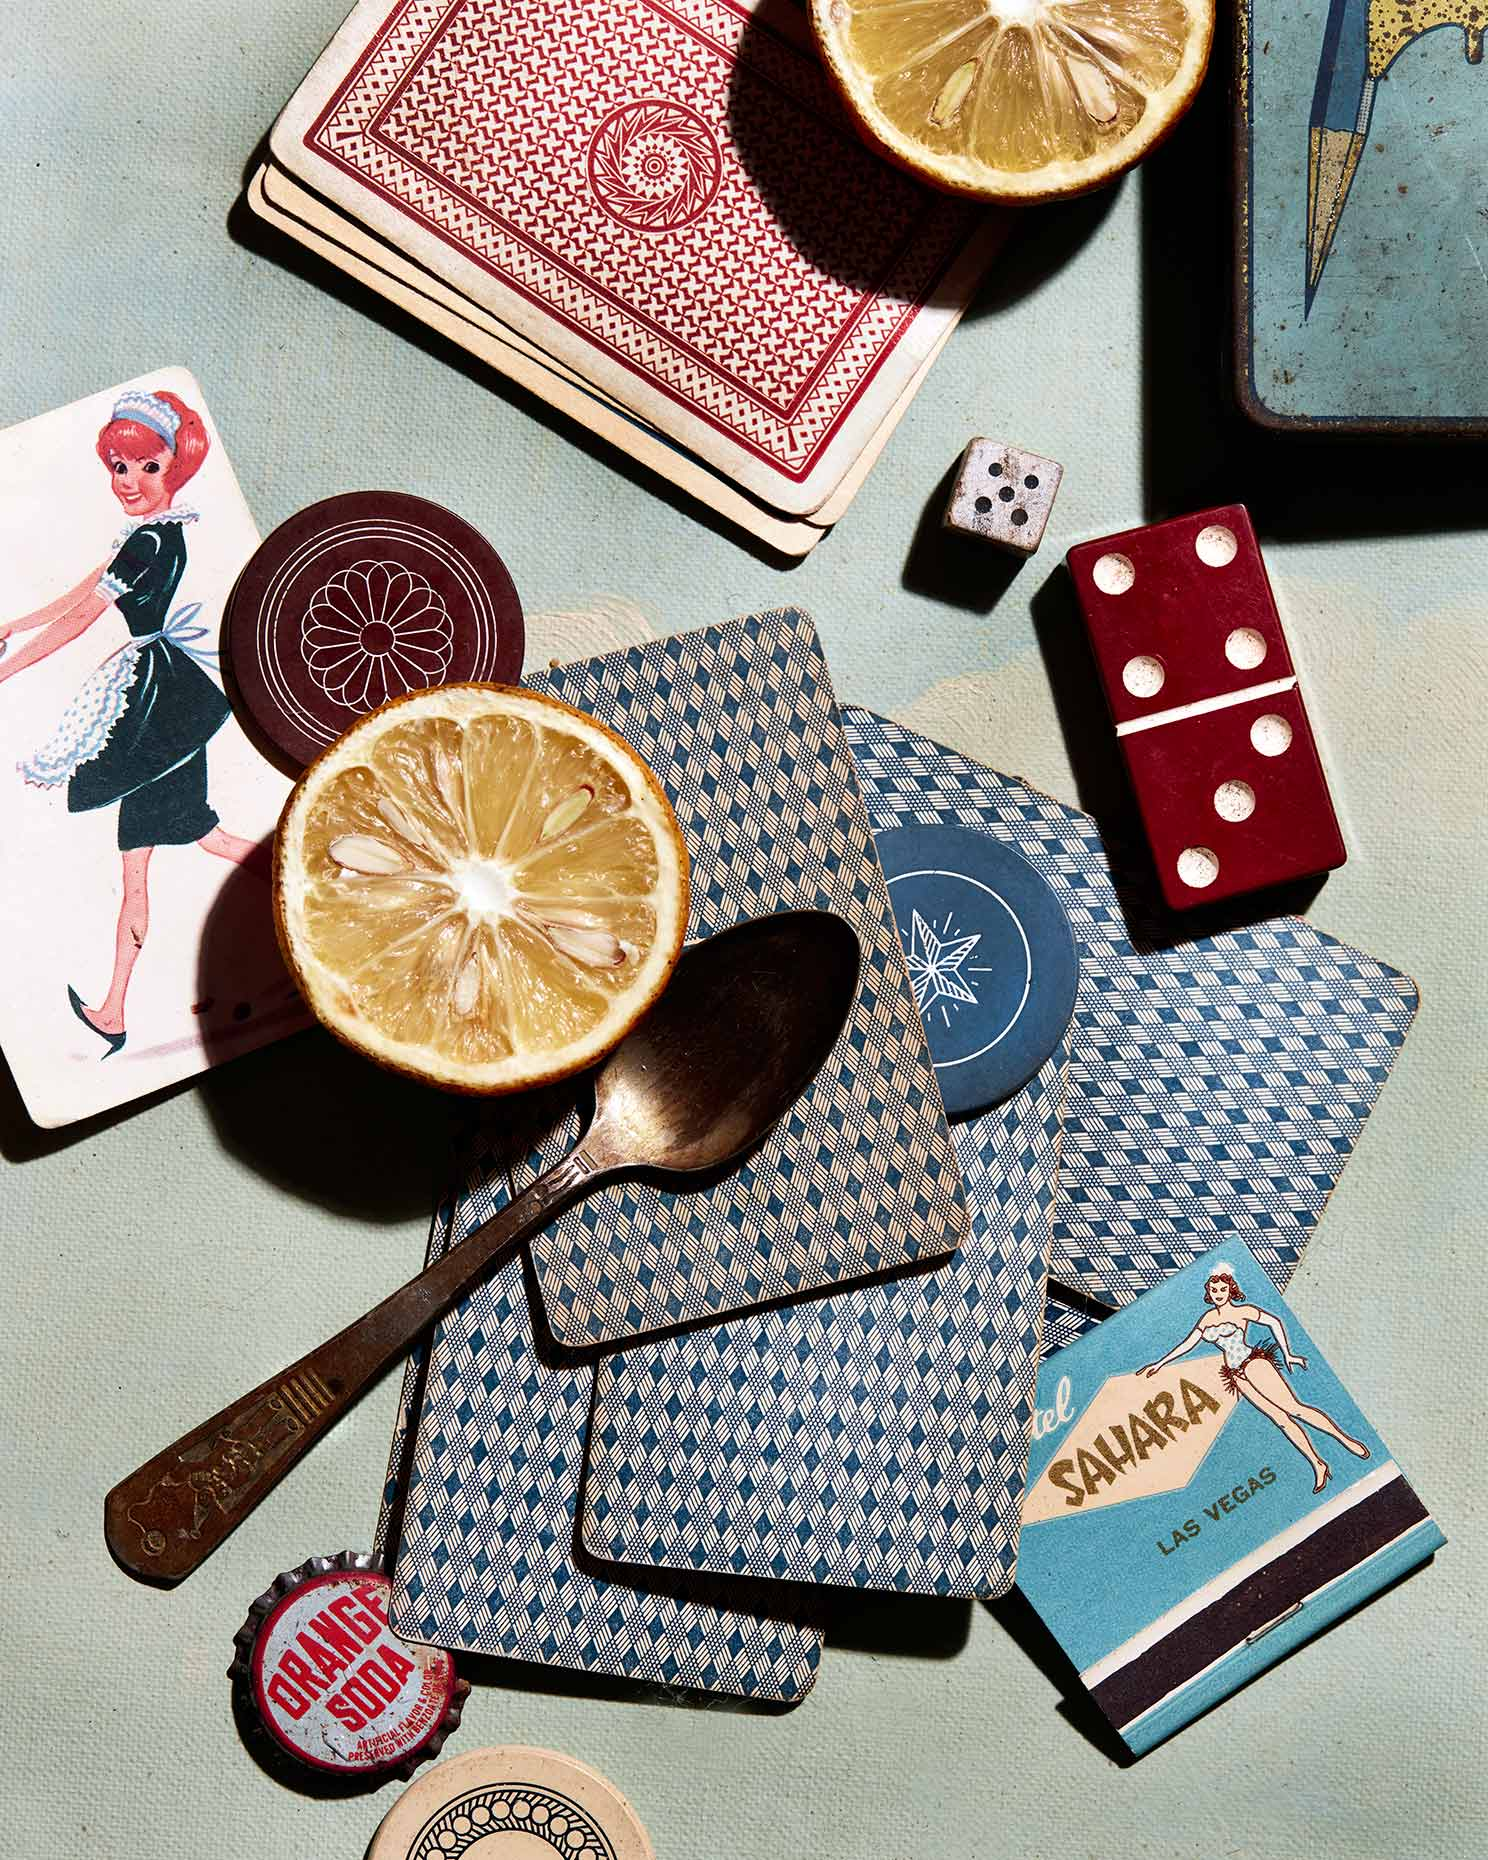 Still life photograph with cards, dice and other gaming items